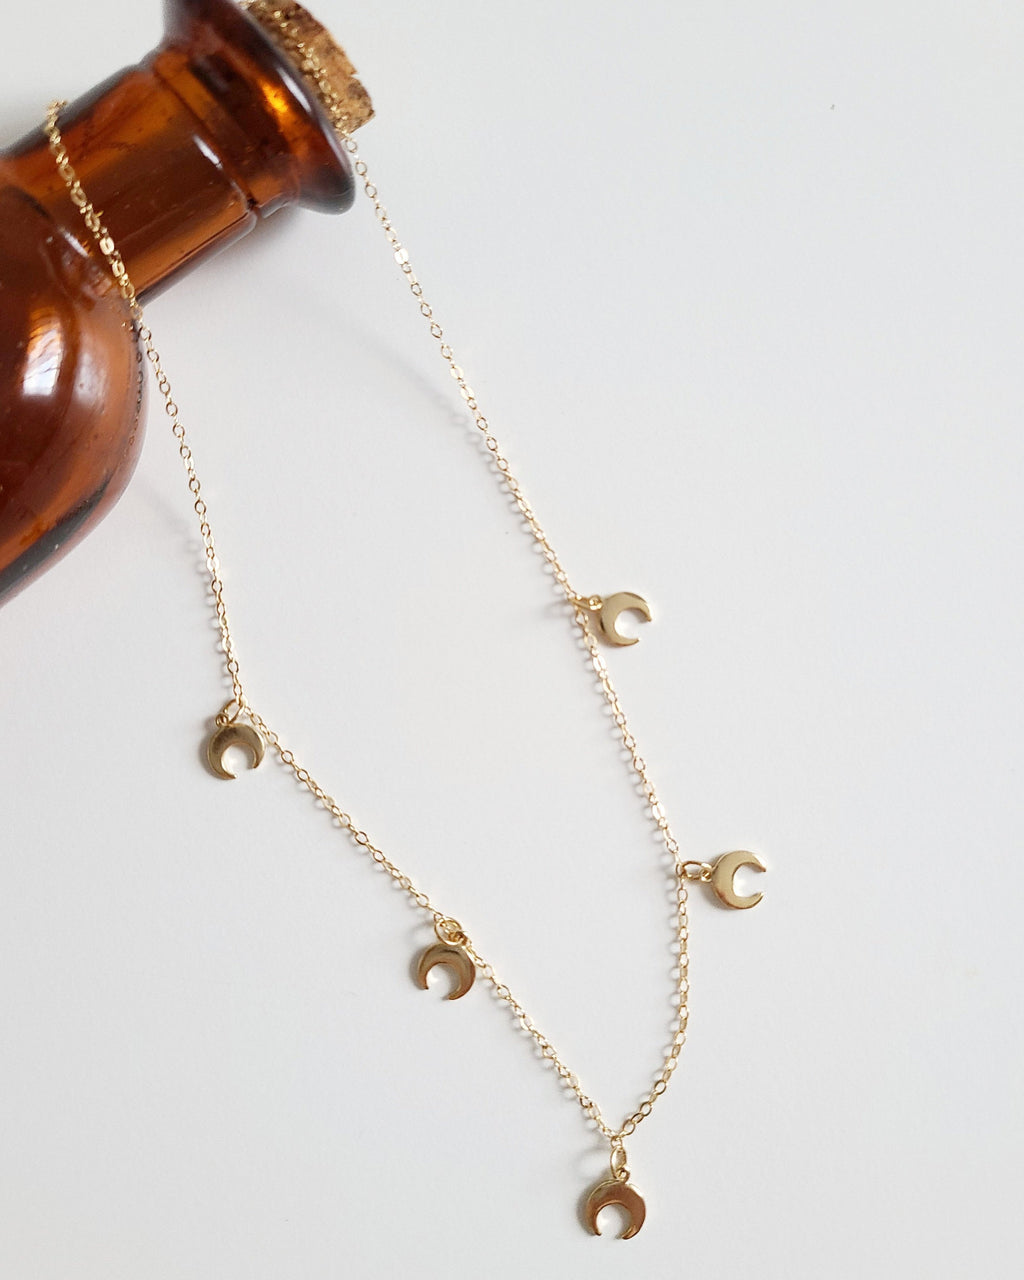 "The Luna Necklace is a 16"" gold vermeil charm necklace. It features 5 crescent moon charms and a dainty lobster clasp."